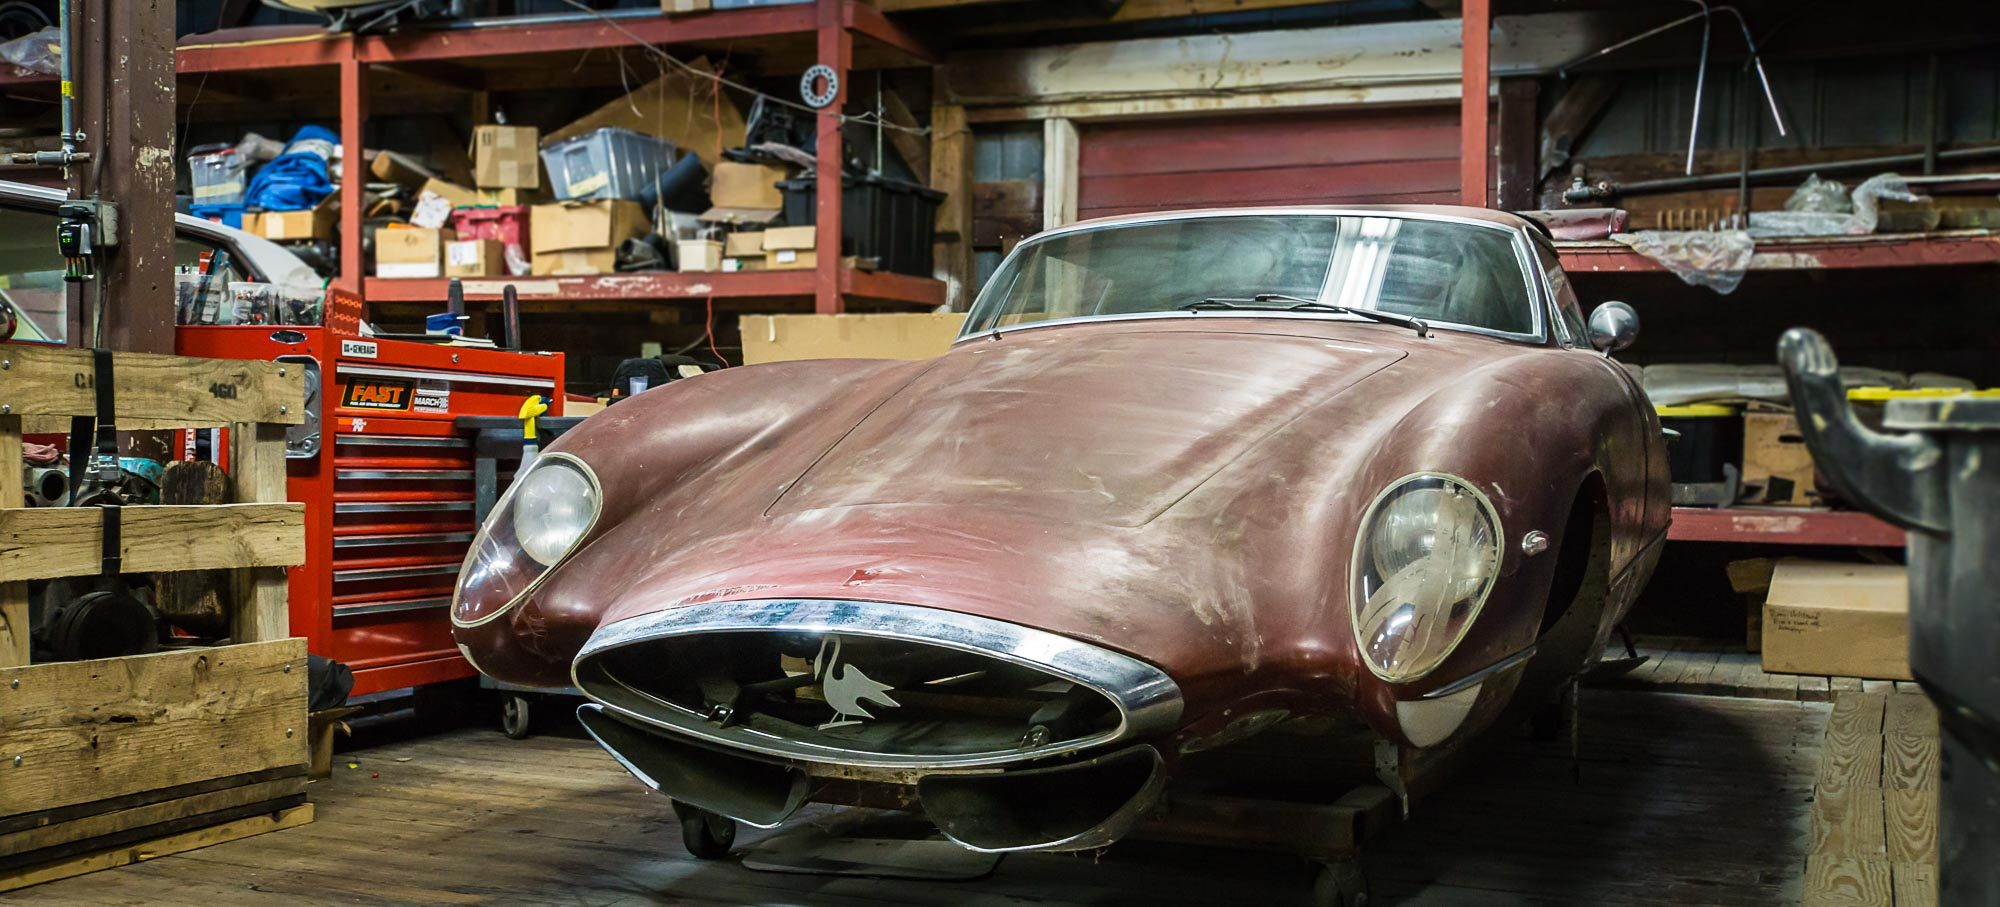 Vintage car in cluttered workshop-garage.